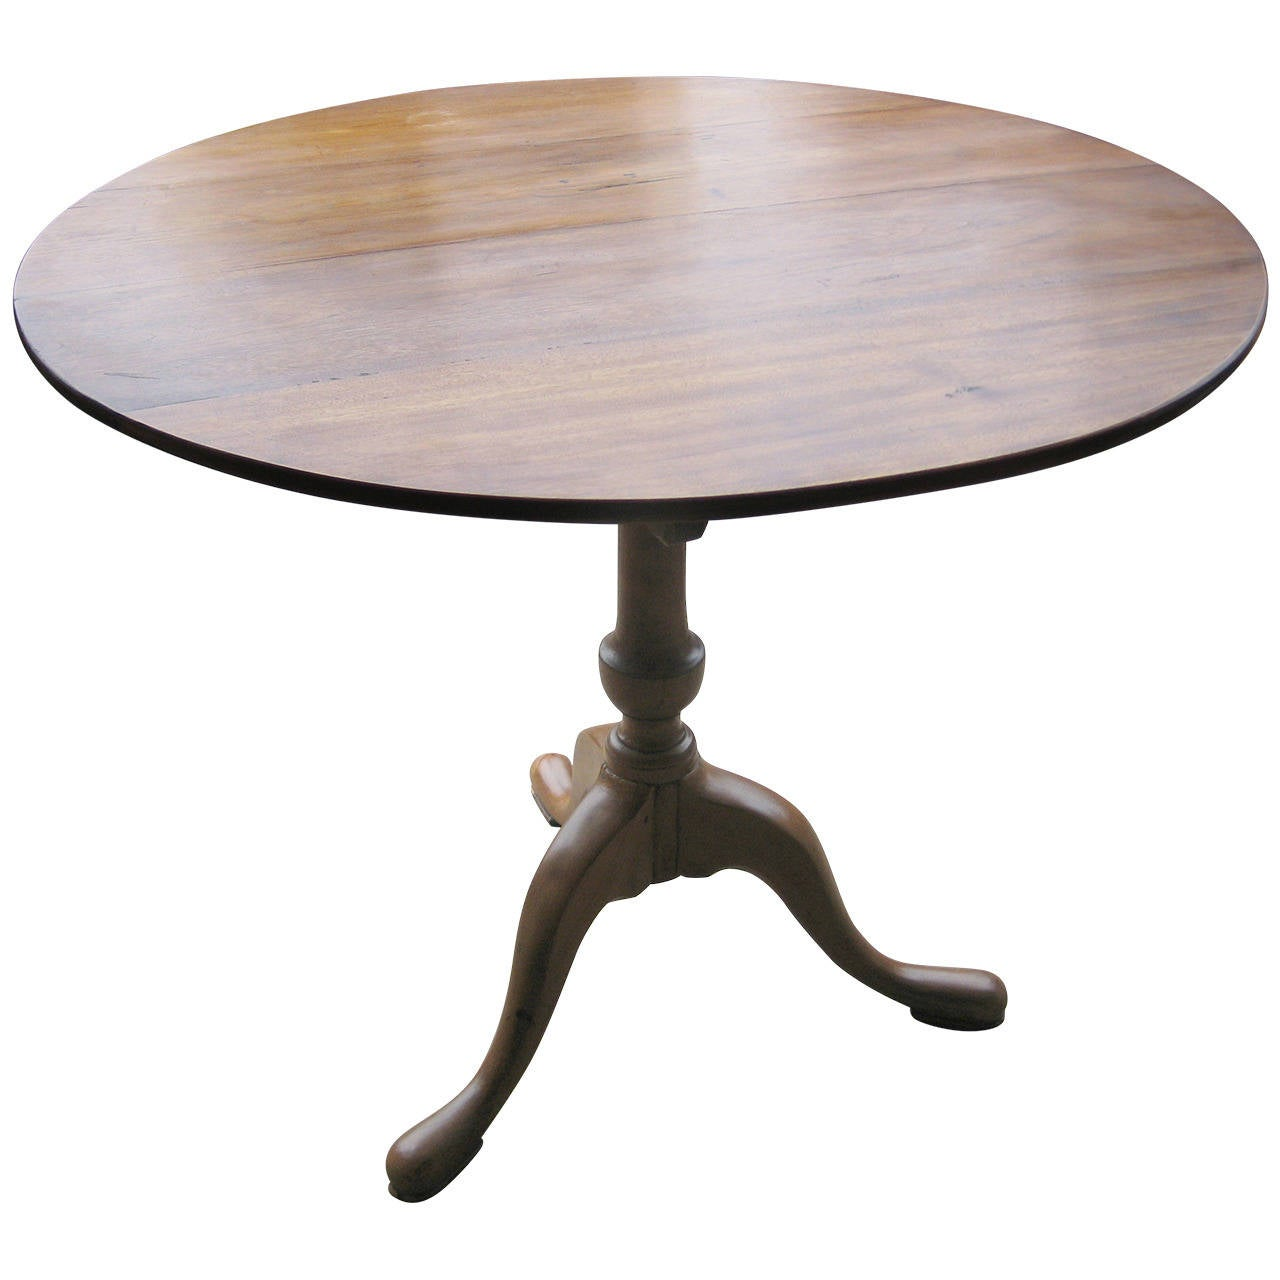 Pedestal Table-NEW LOWER PRICE For Sale at 1stdibs